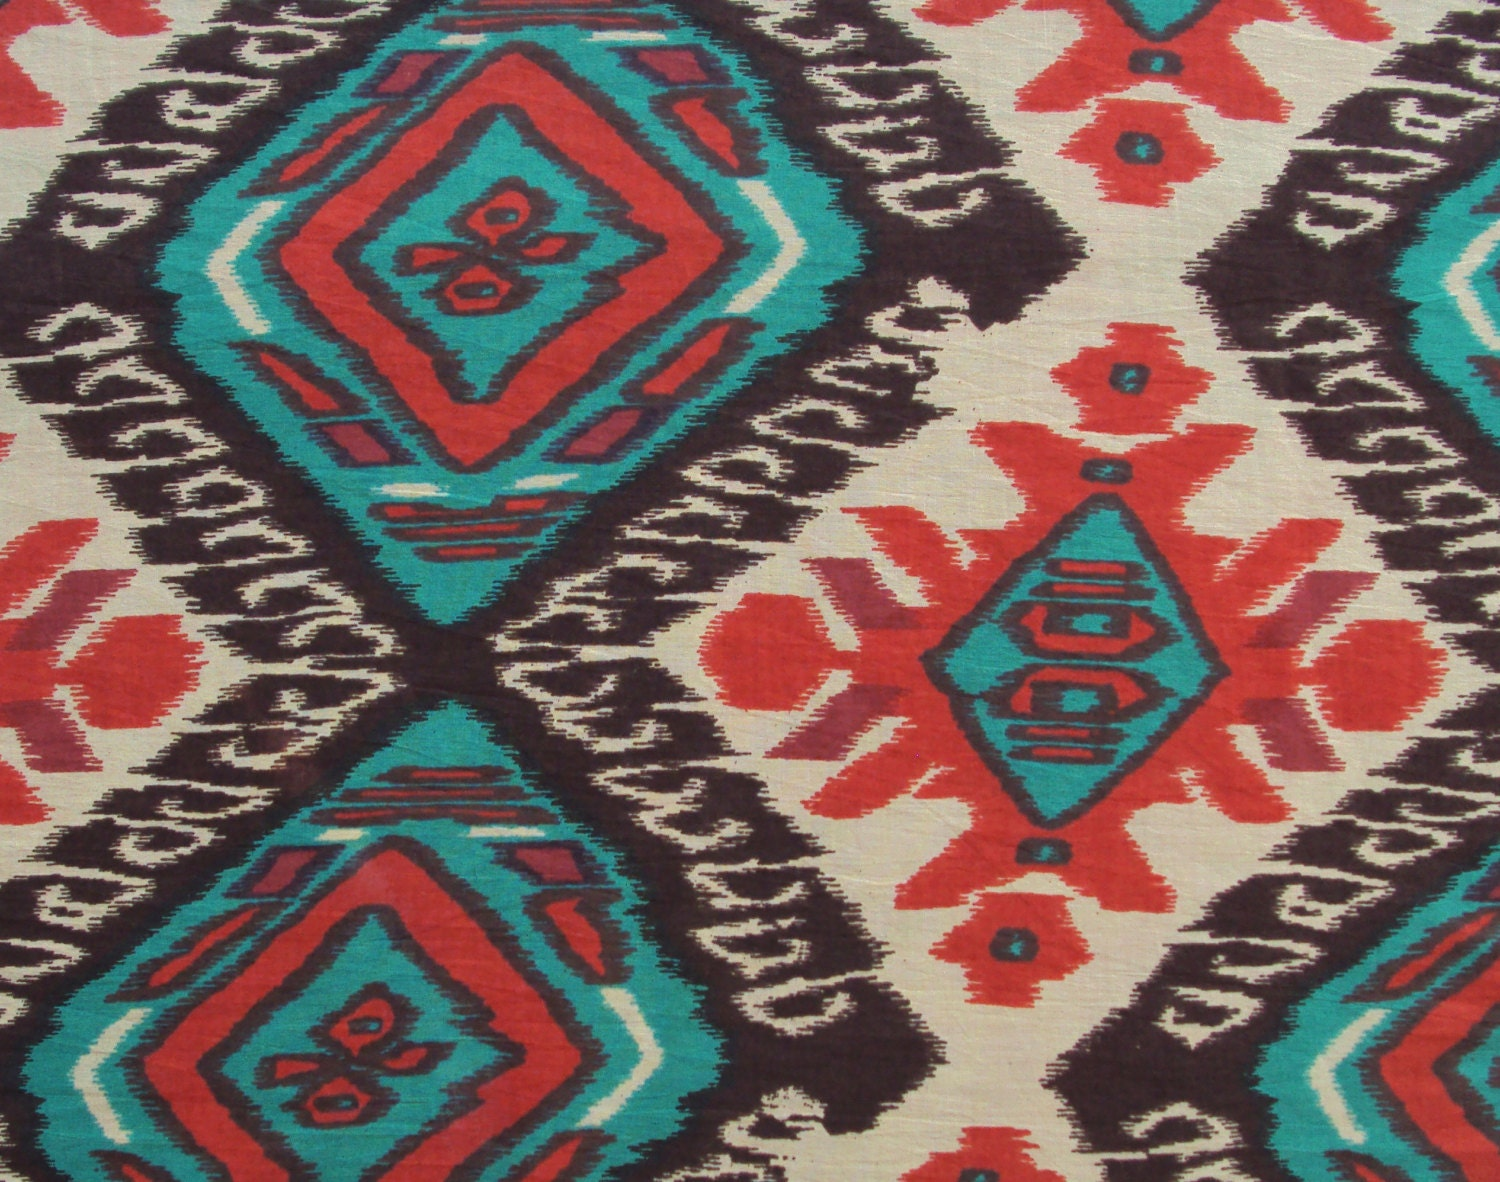 Cotton Fabric Print aztec tribal ikat style print in